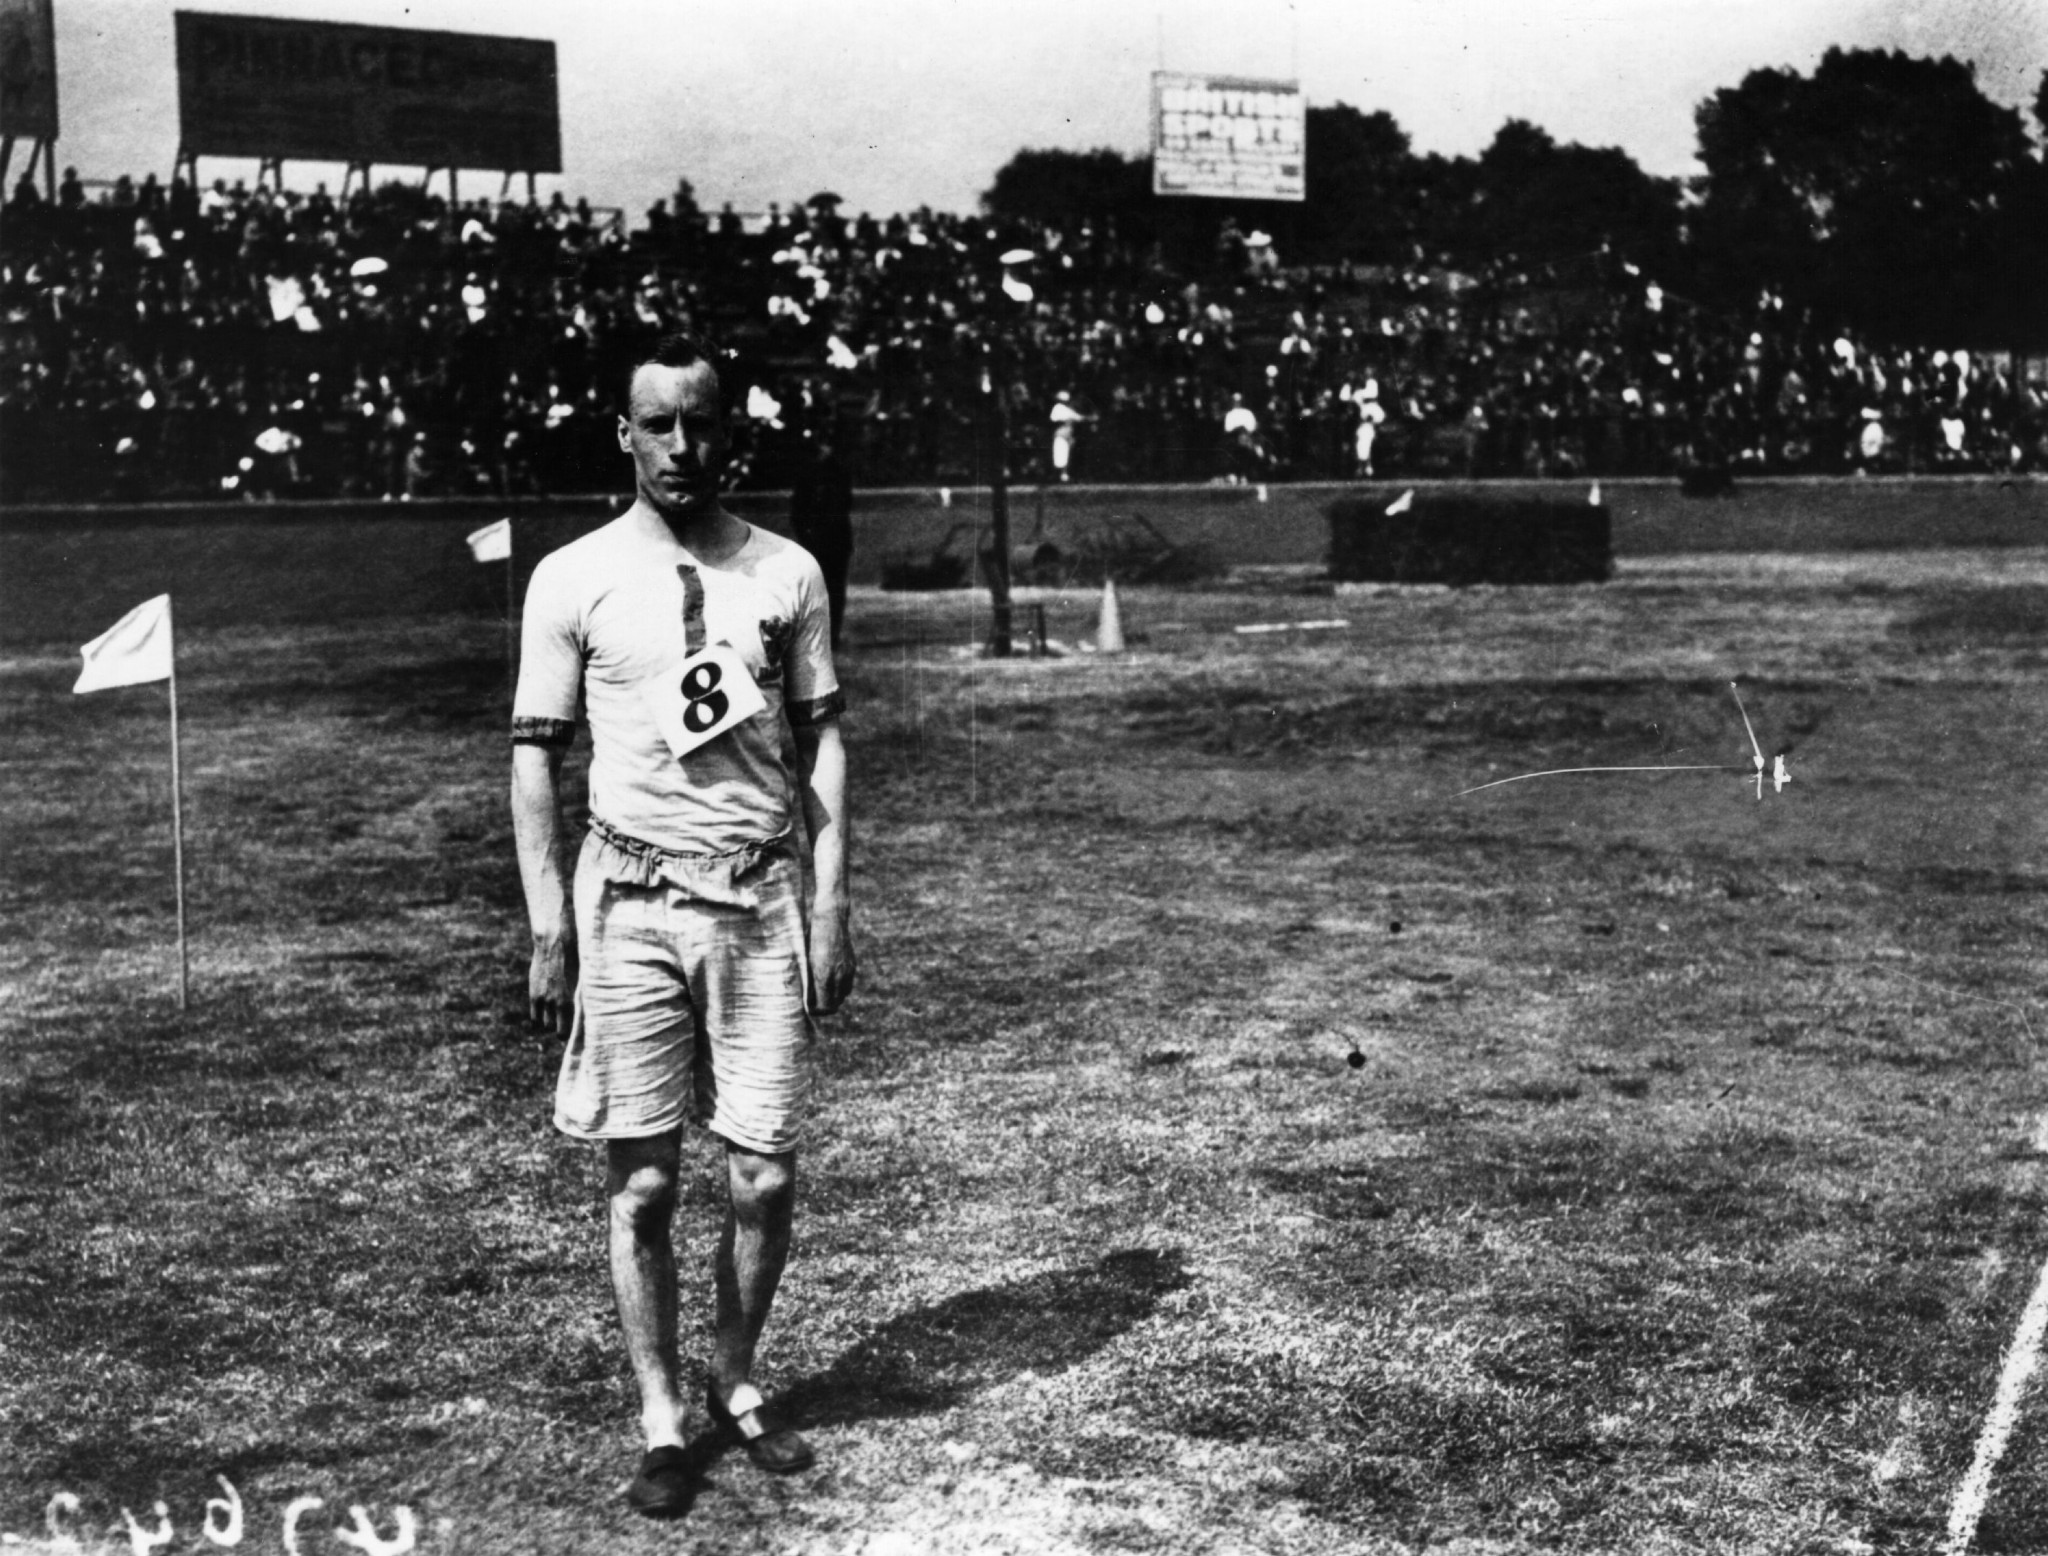 Eric Liddell, one of the runners immortalised in Chariots of Fire ©Getty Images